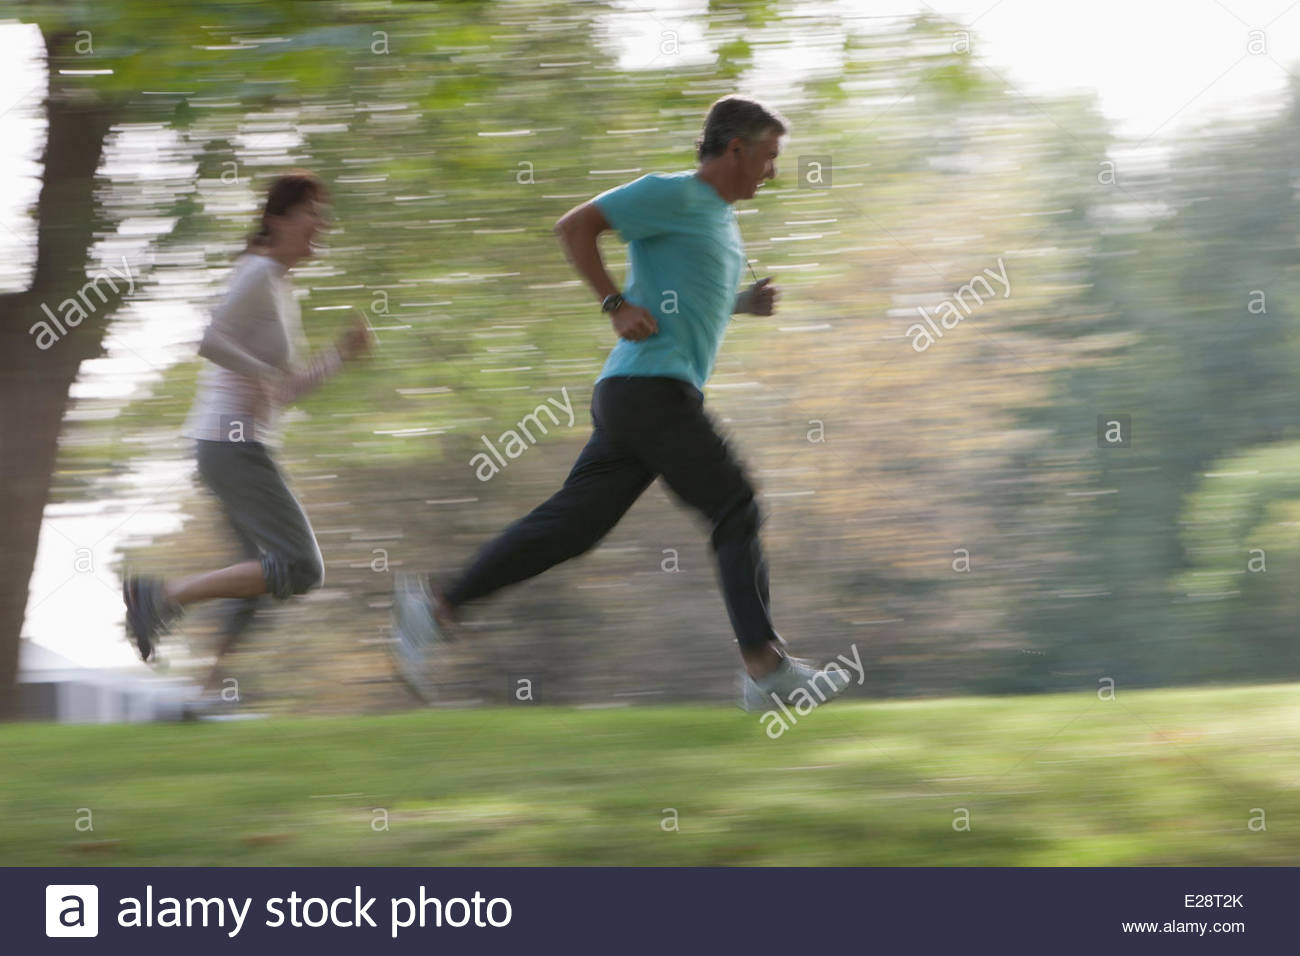 Couple jogging together outdoors - Stock Image